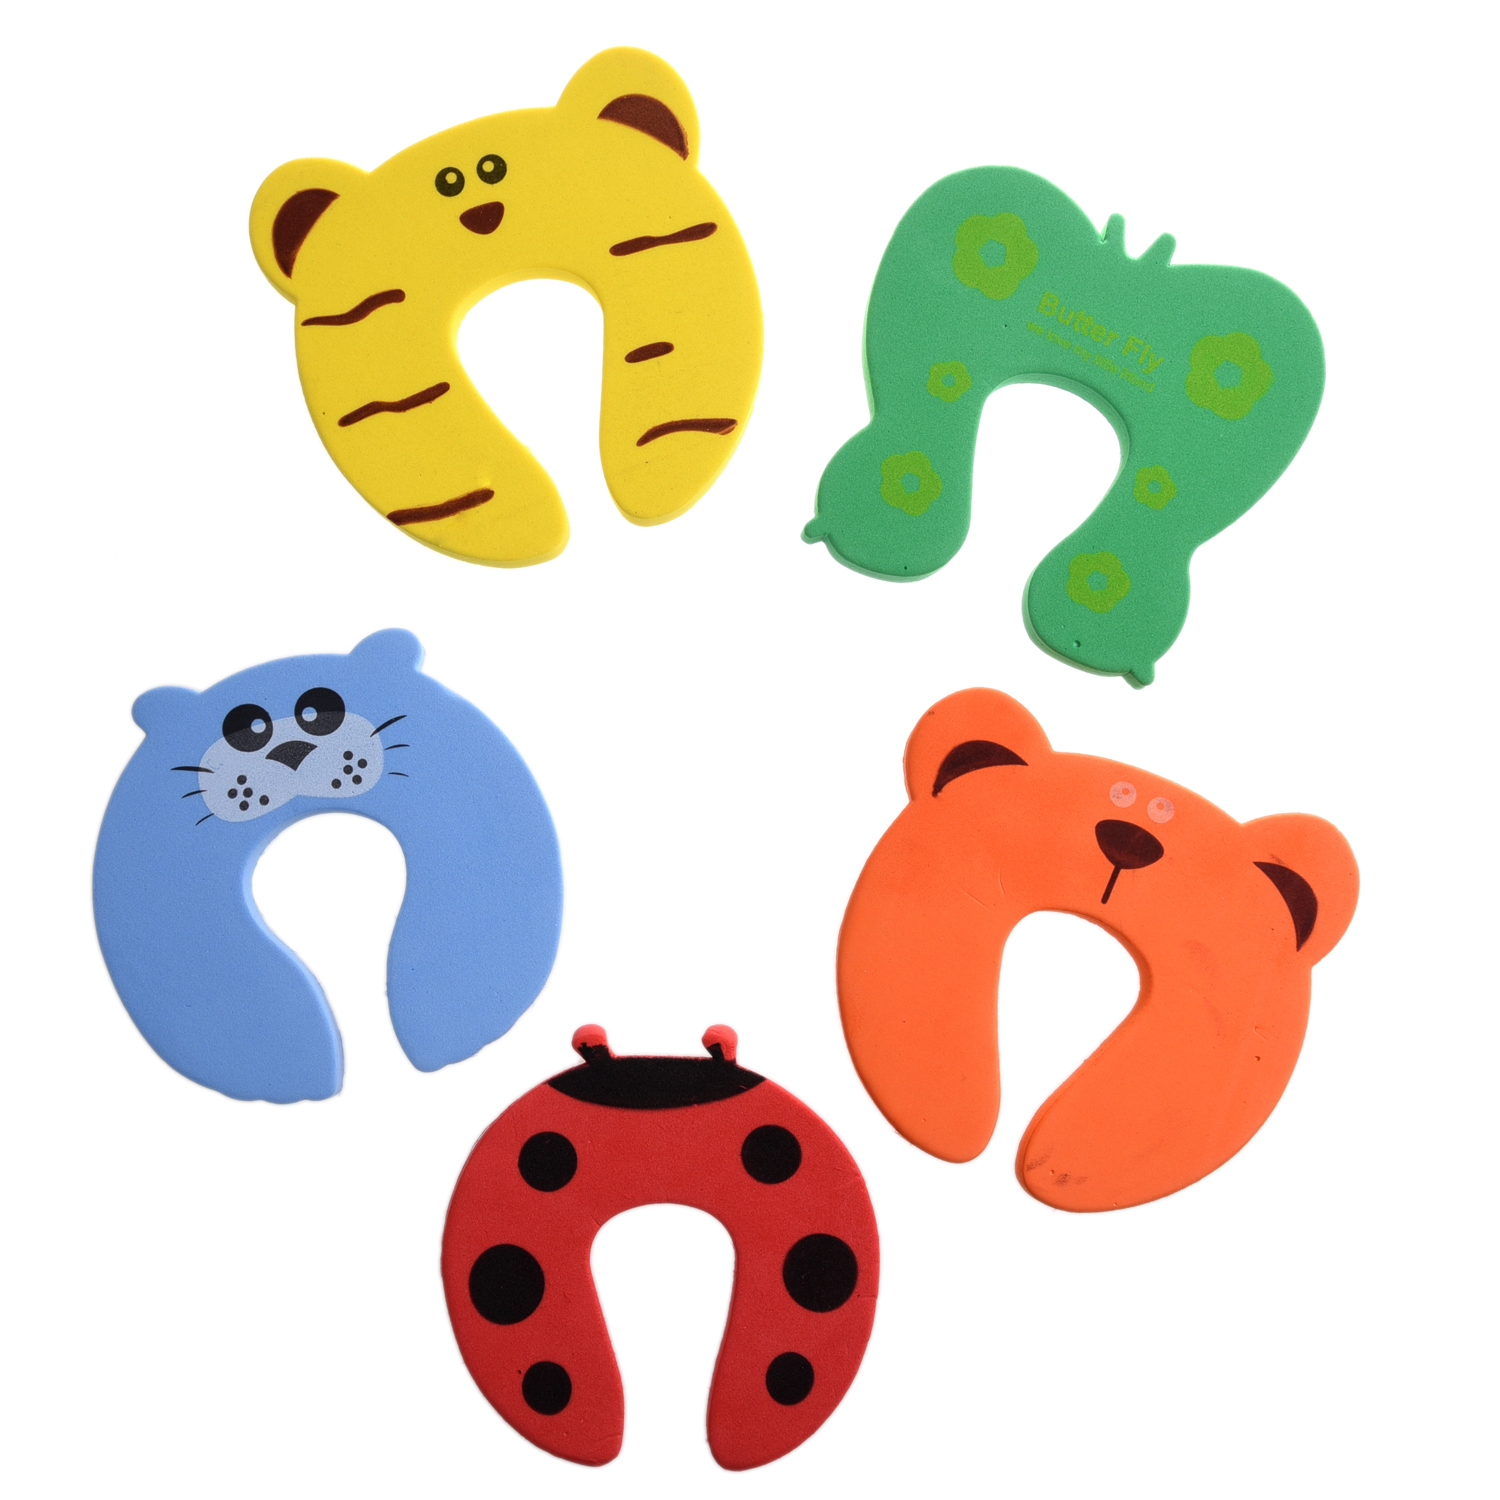 MOOL 5x Baby Kids Door Jammer Finger Pinch Guard Child Toddler Infant Safety Protector Stopper Cute Animal Designs hot sale 4pcs lot cute pack baby safety animal door stop finger pinch guard 18